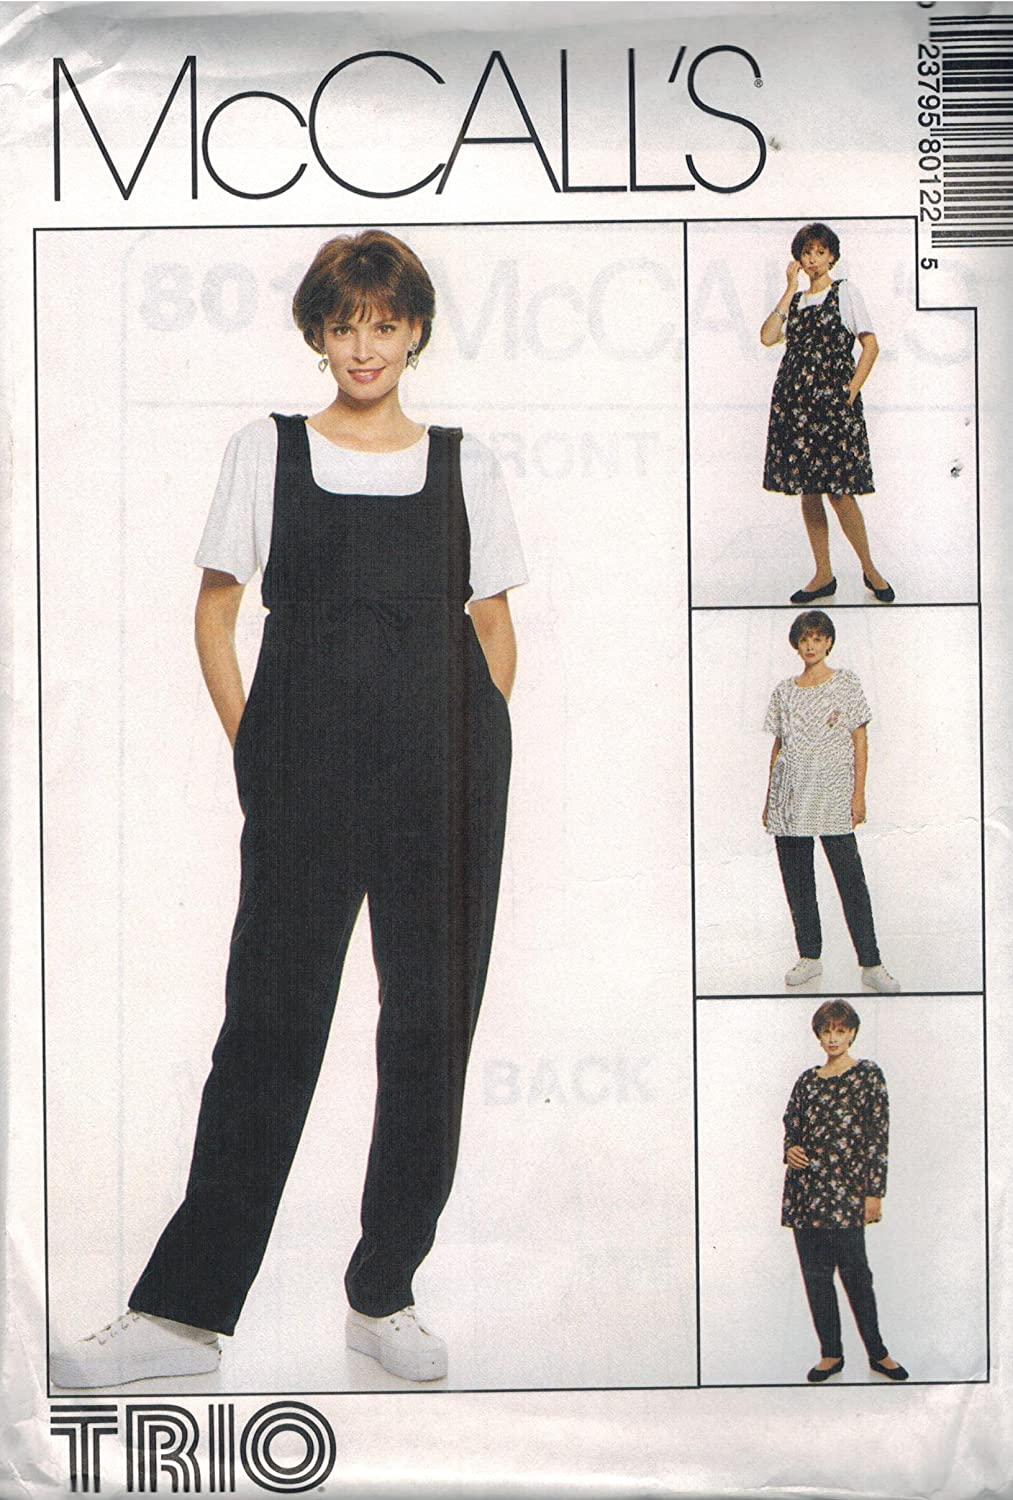 Amazon Com 8012 Mccalls Sewing Pattern Uncut Misses Maternity Jumper Jumpsuit Top Pull On Pants Size 8 10 12 Arts Crafts Sewing